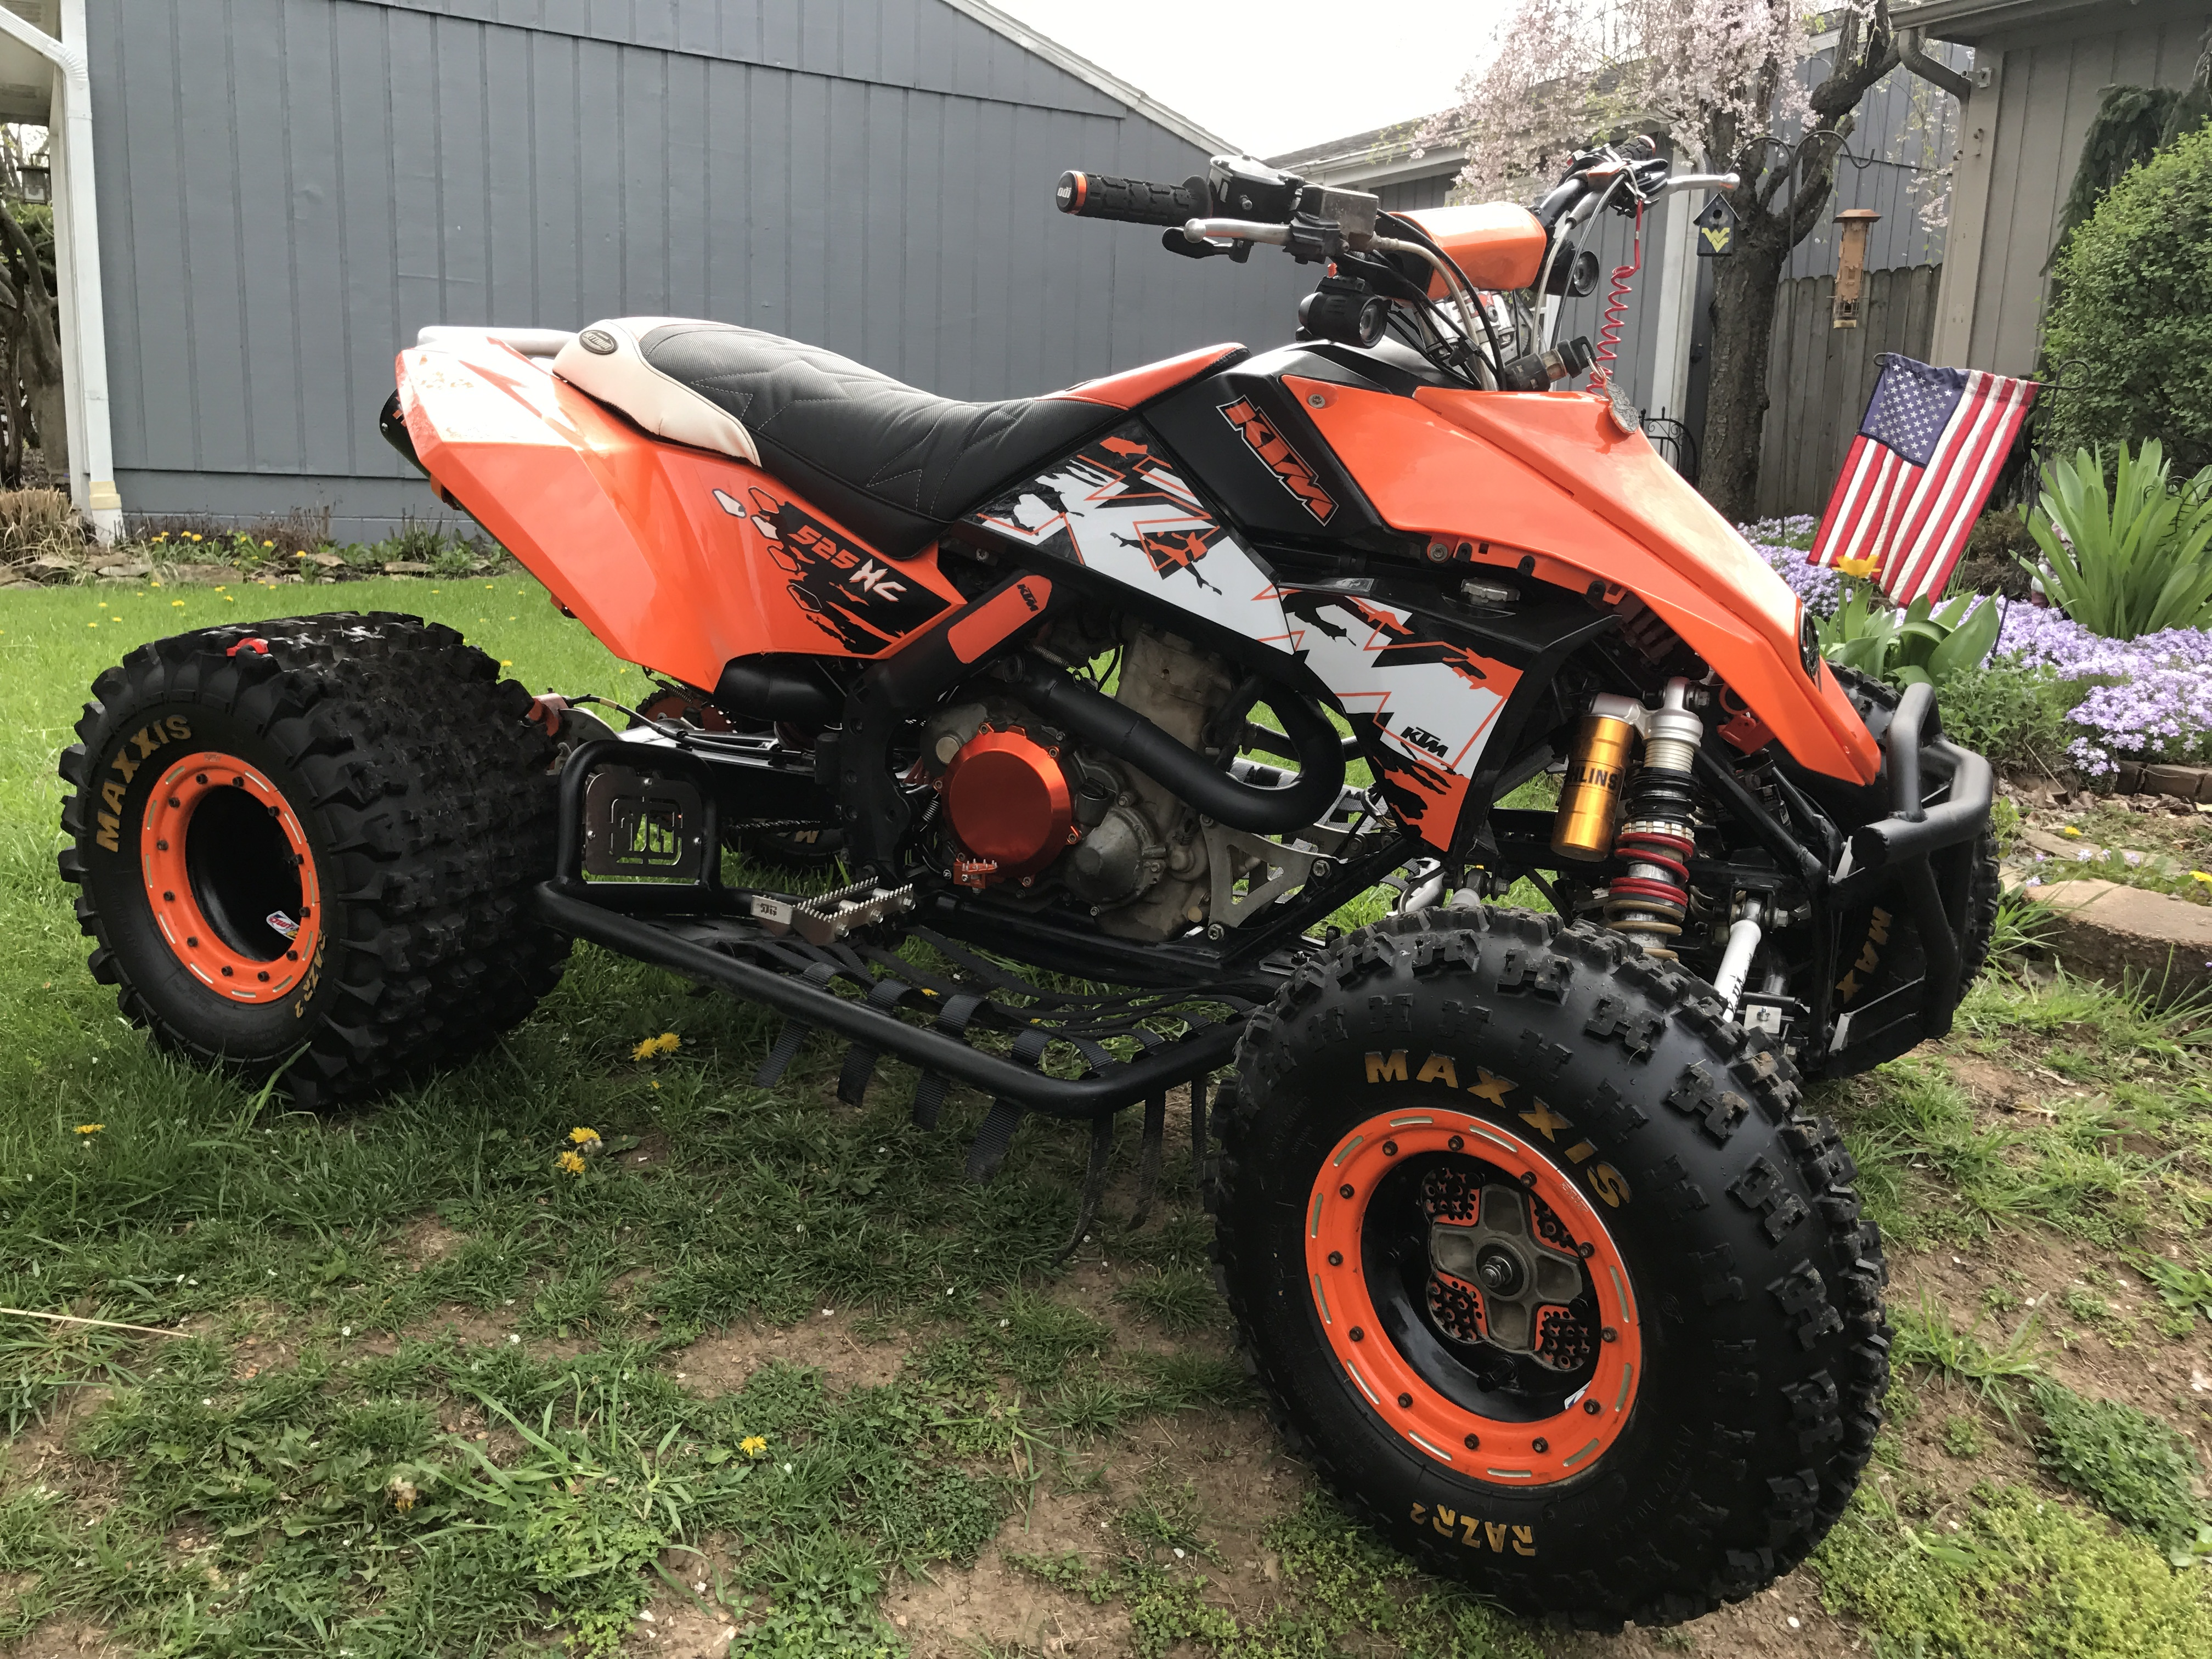 nearly new all 4 racing full black exhaust system ktm 525. Black Bedroom Furniture Sets. Home Design Ideas